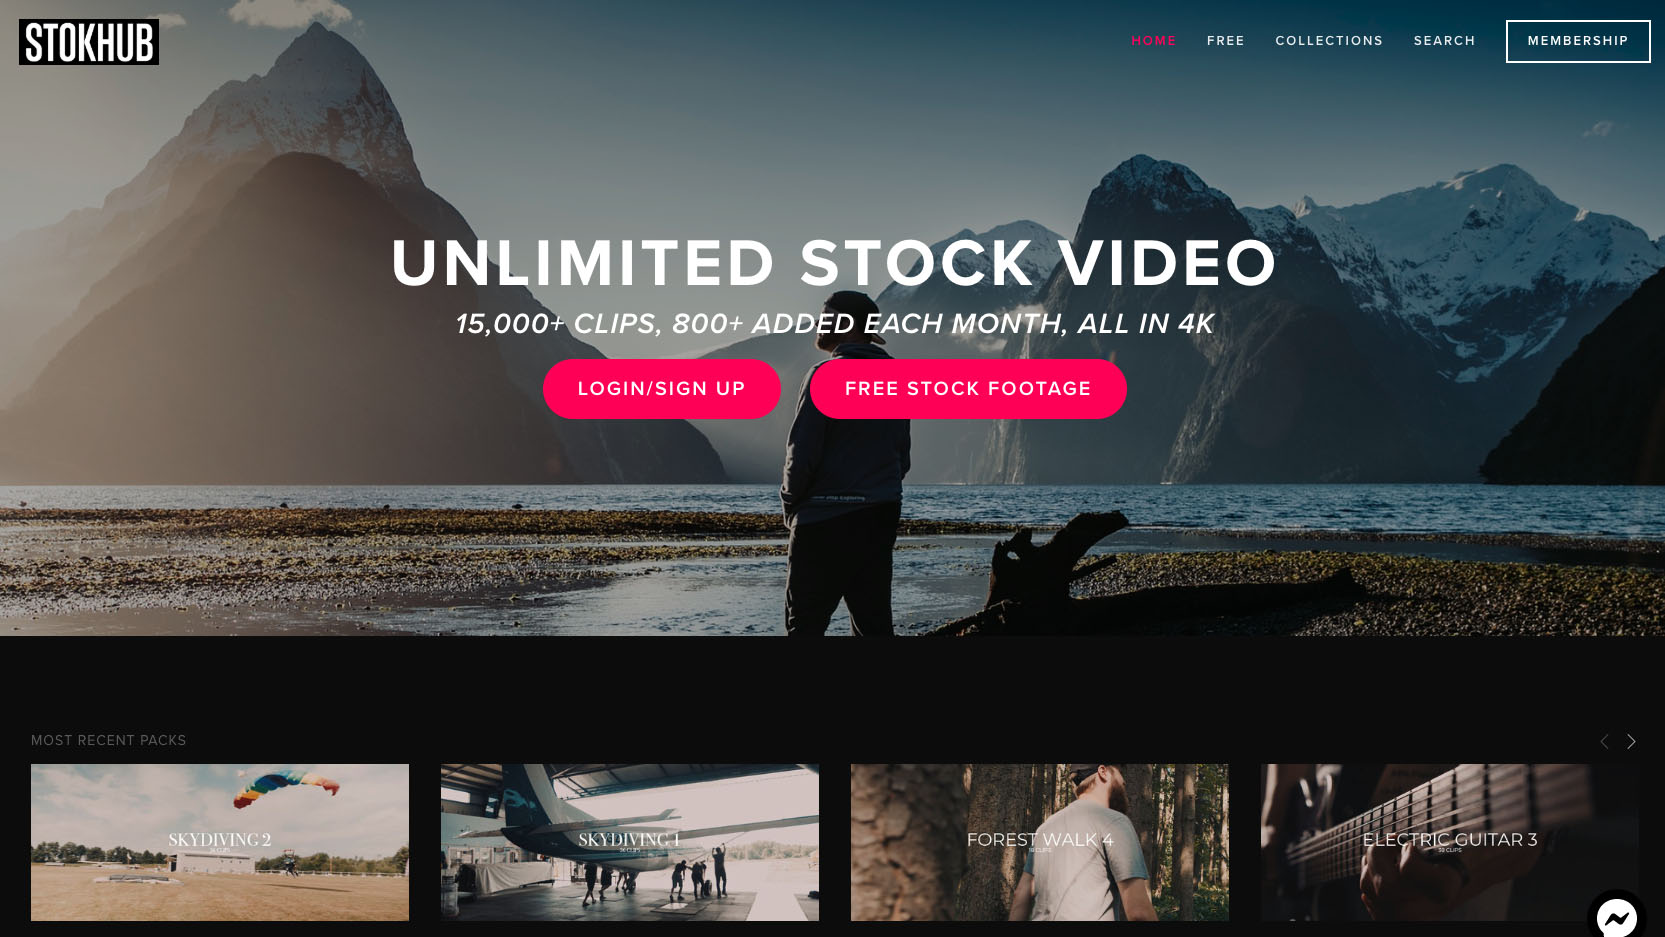 STOKHUB - The first Stock video designed for churches. Stokhub is the most affordable option for churches costing hundreds and even thousands less than competitors Stokhub has a heart for the church that no other company can claim.